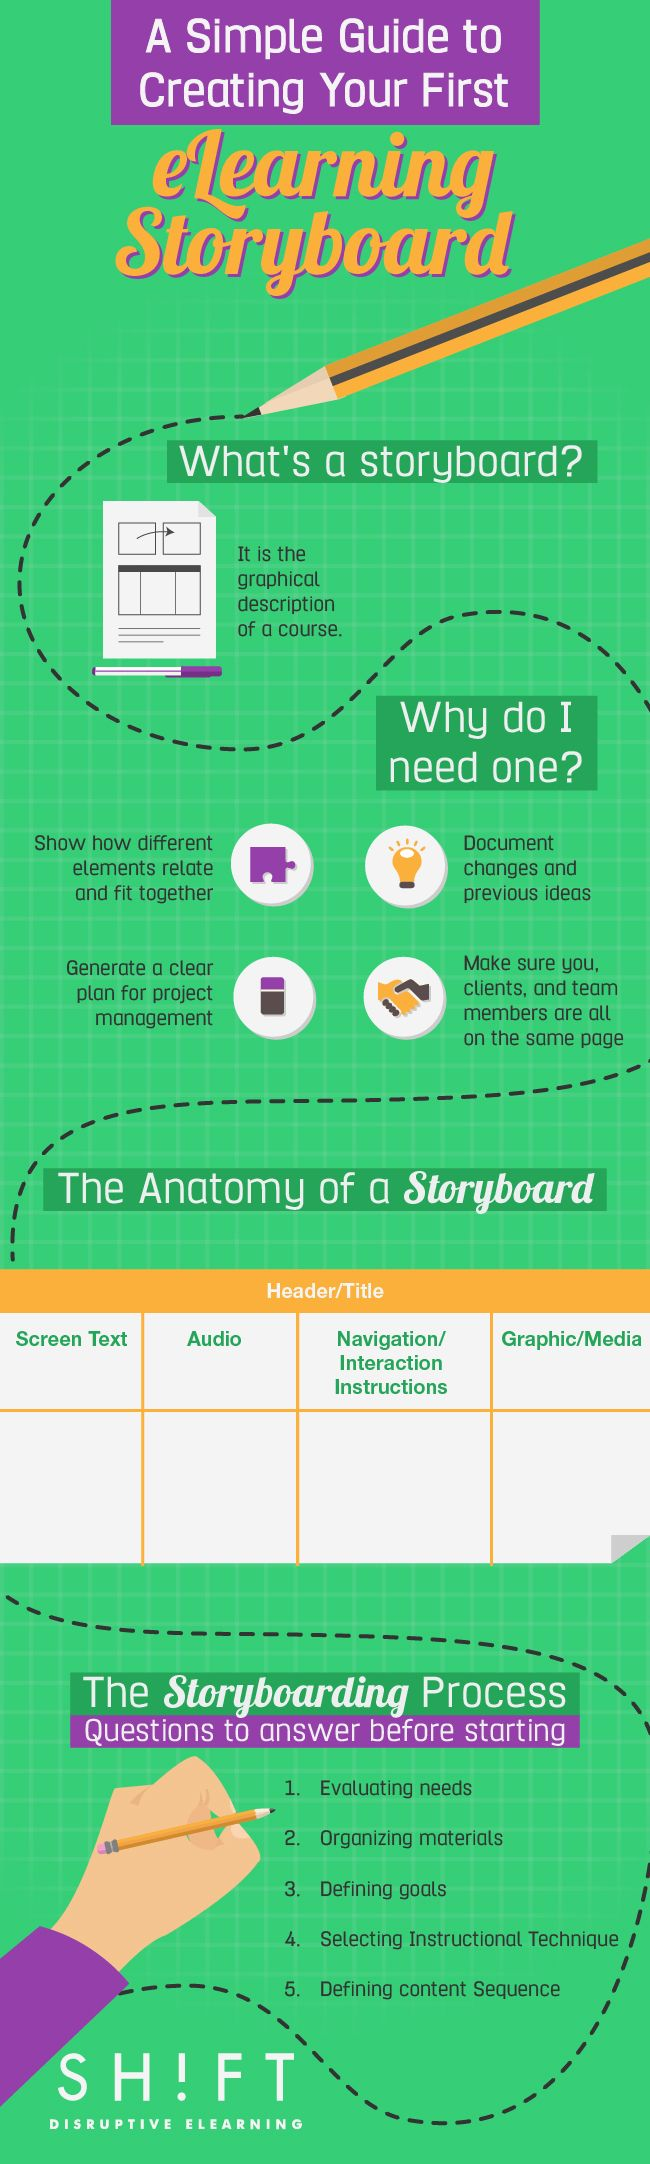 How To Create Your First eLearning Storyboard Infographic - http://elearninginfographics.com/create-first-elearning-storyboard-infographic/